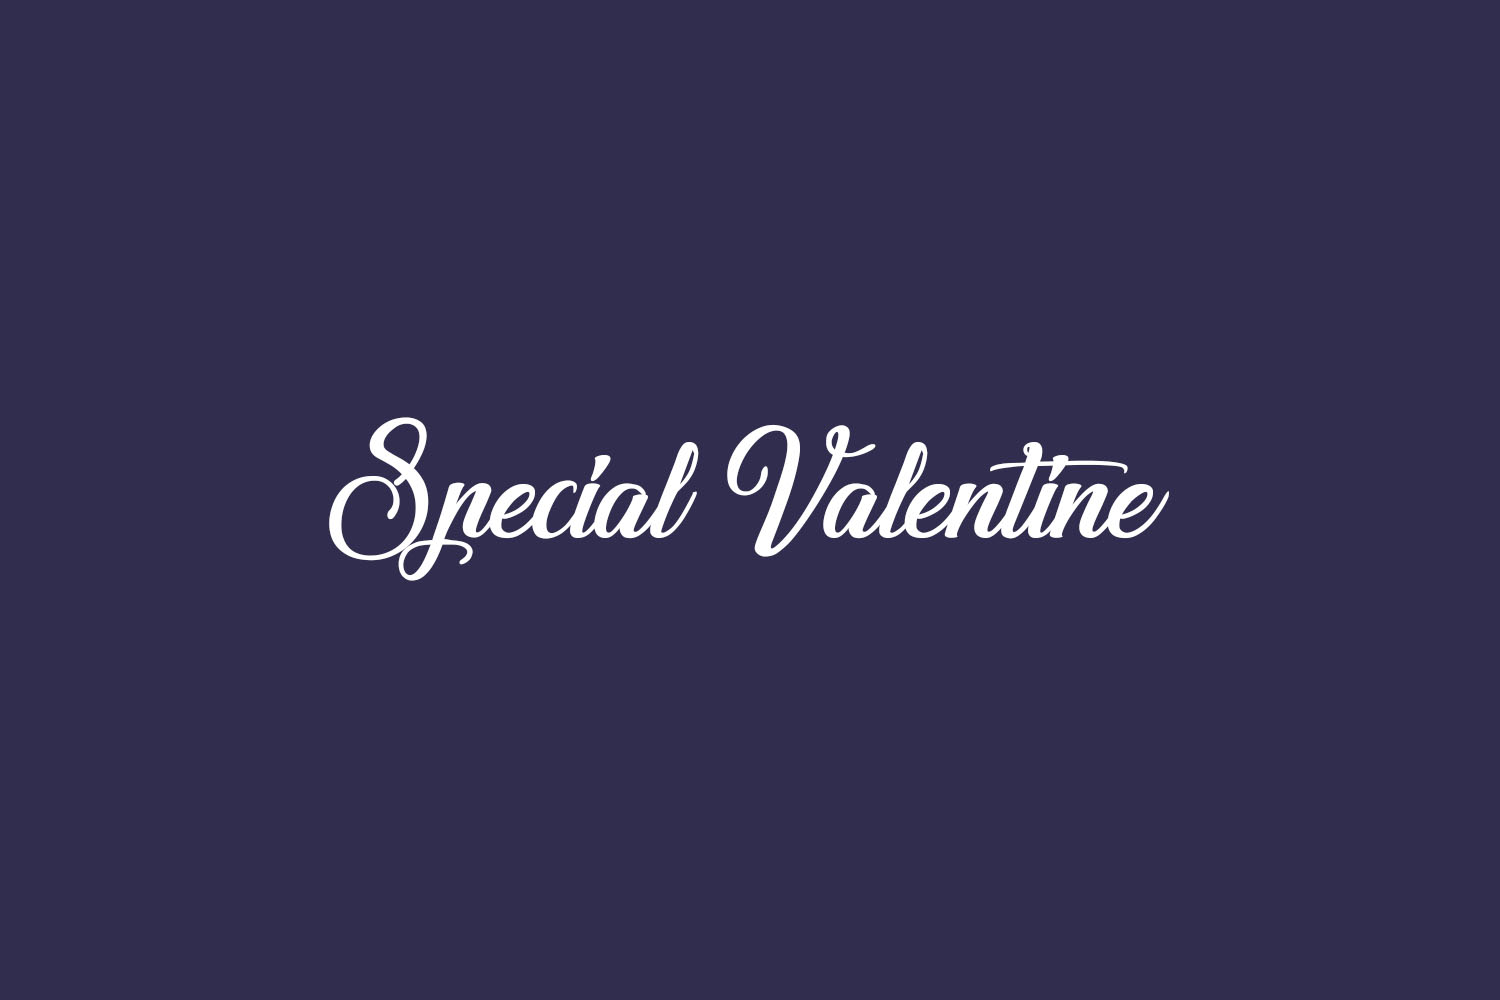 Special Valentine Free Font